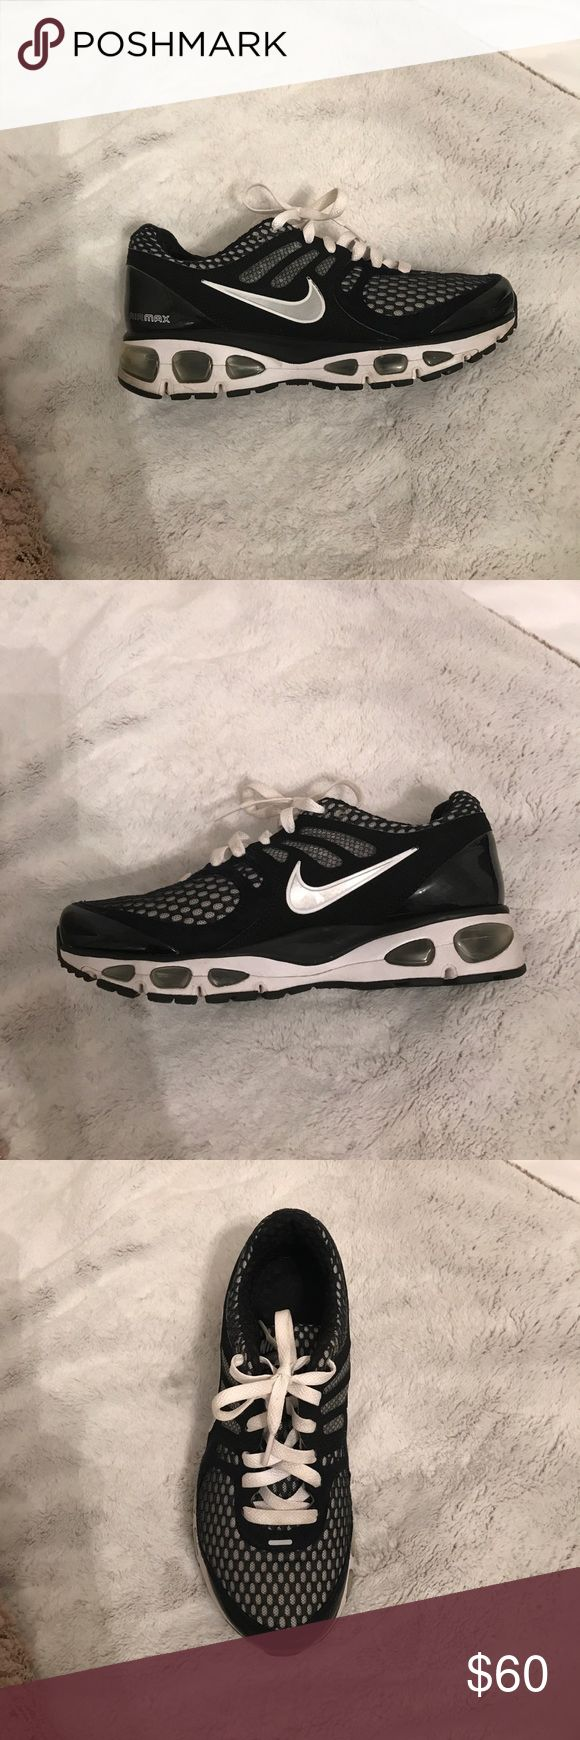 Very lightly worn Nike Air Max's Air Tailwind 2 These Air Tailwind 2's have only been worn a few times and are really really cute. Nike Shoes Sneakers